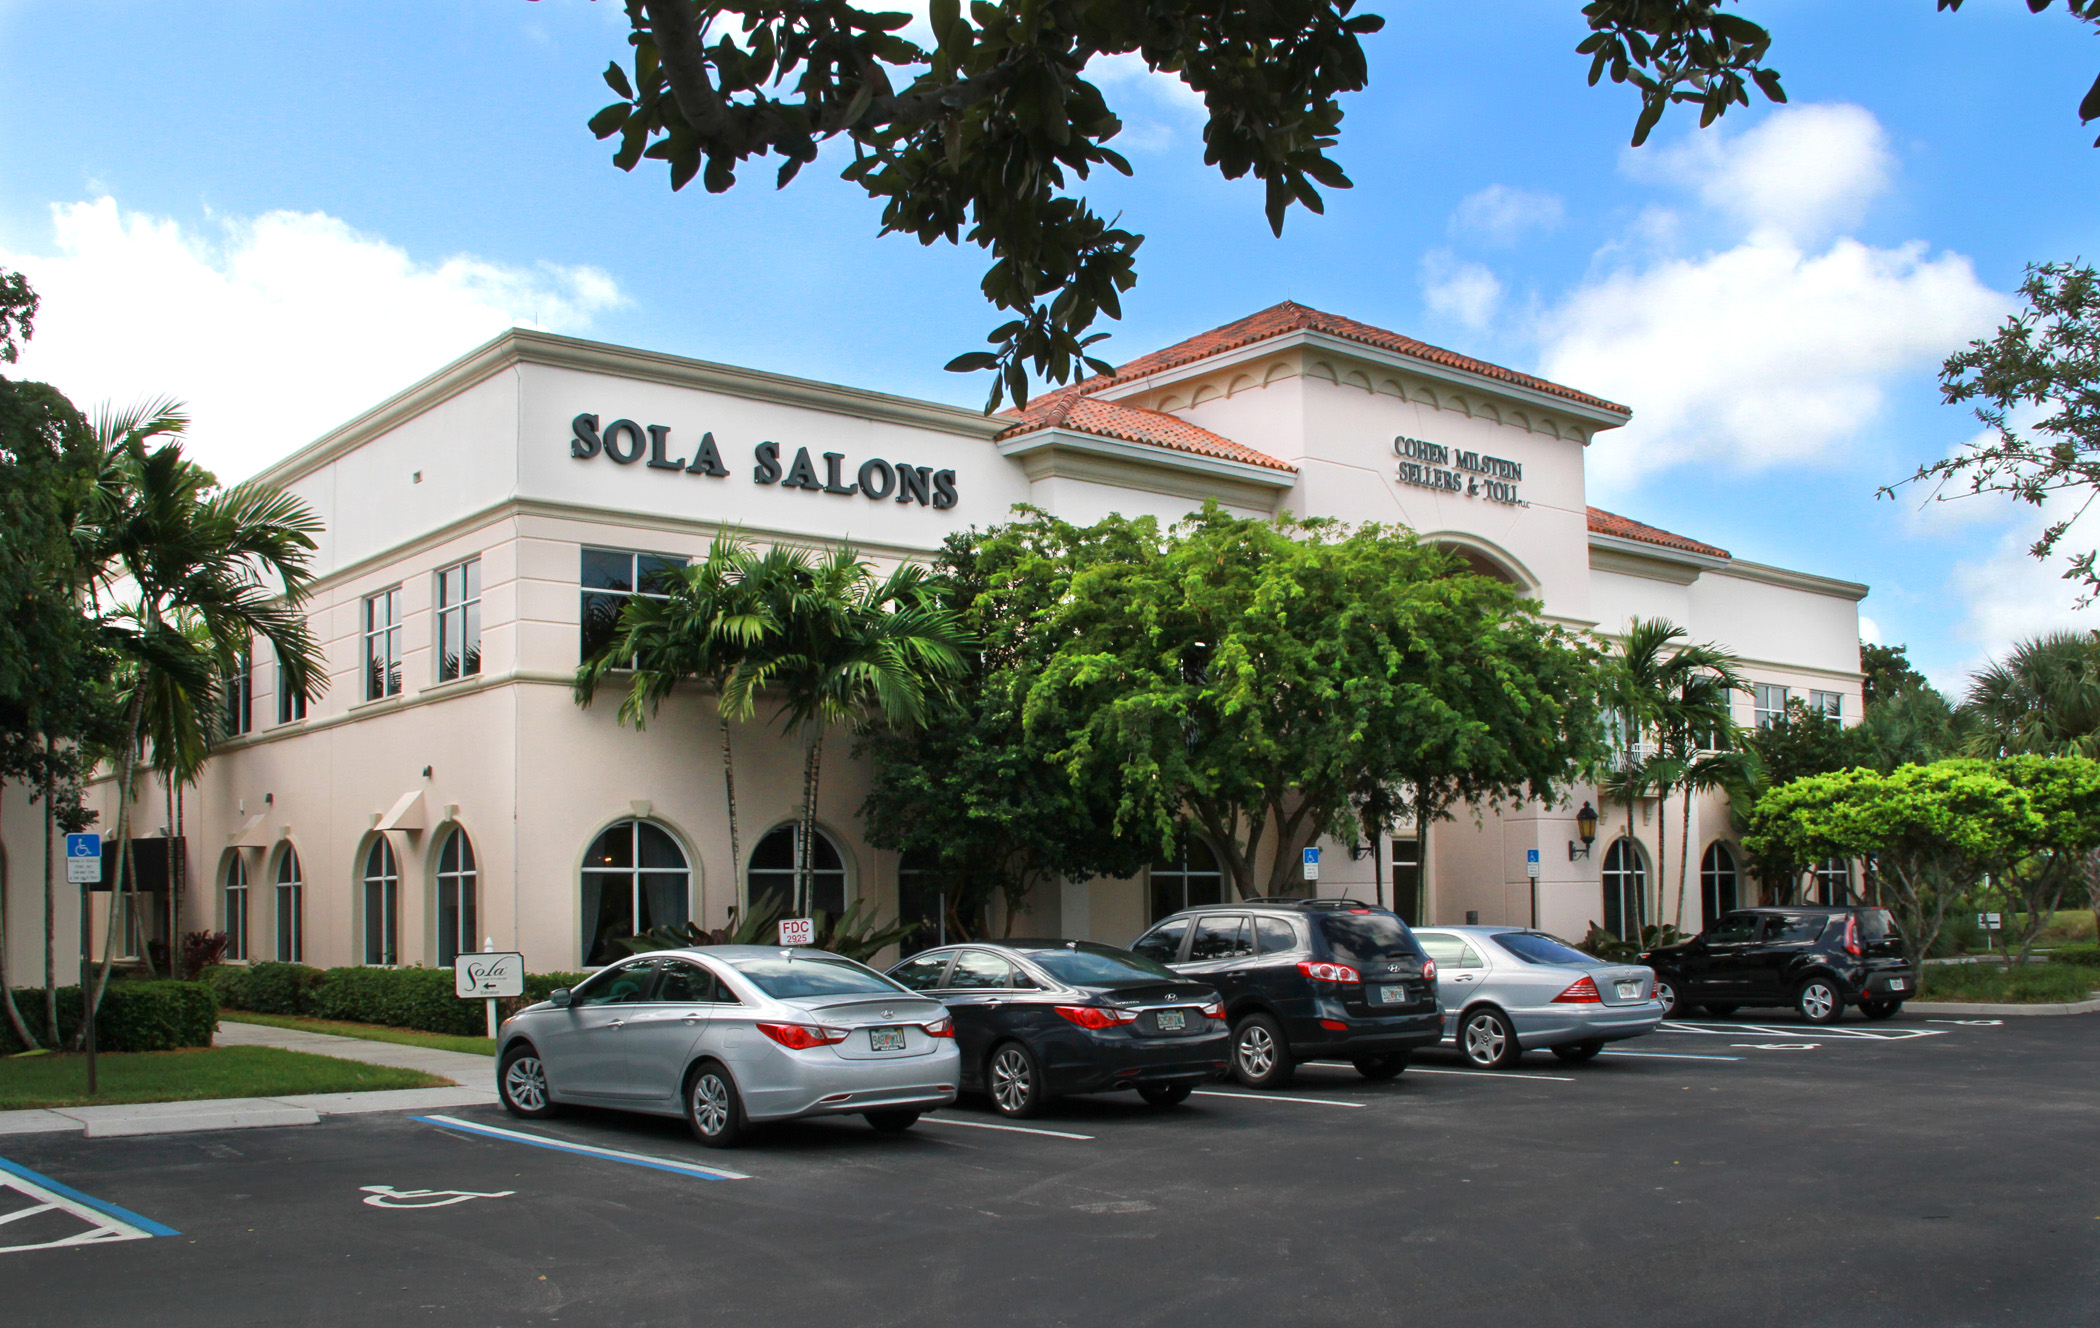 Fairway Investments Recently Completed The Purchase Of 2925 PGA Boulevard,  A 24,753 Square Foot Class A Office Building In Palm Beach Gardens, Florida.